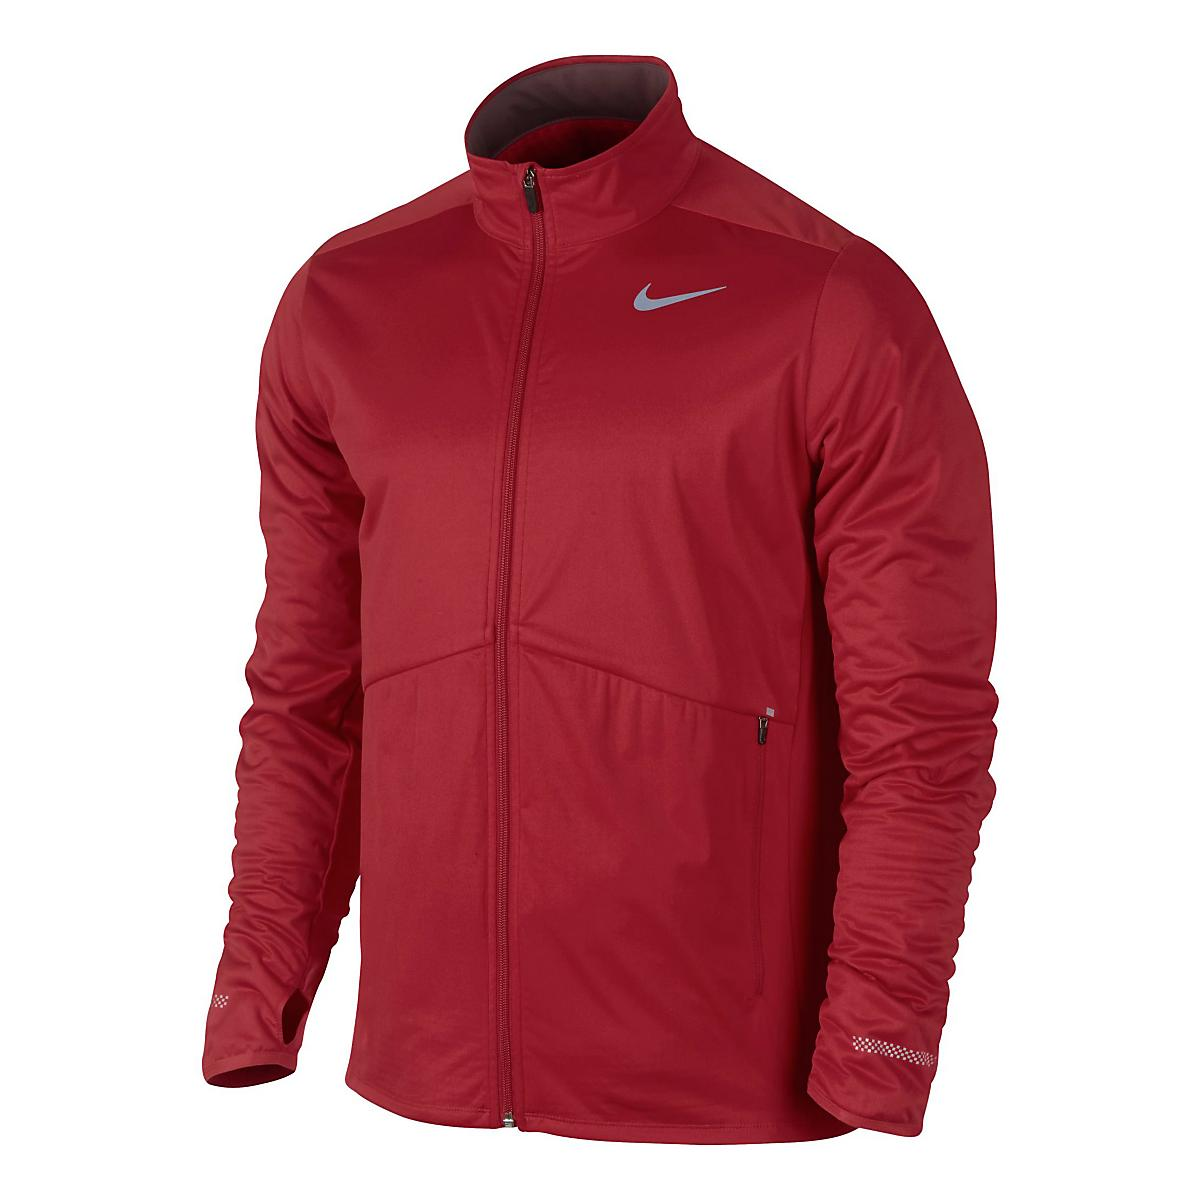 Mens Nike Element Shield Full Zip Running Jackets at Road Runner Sports c45bd35d0692